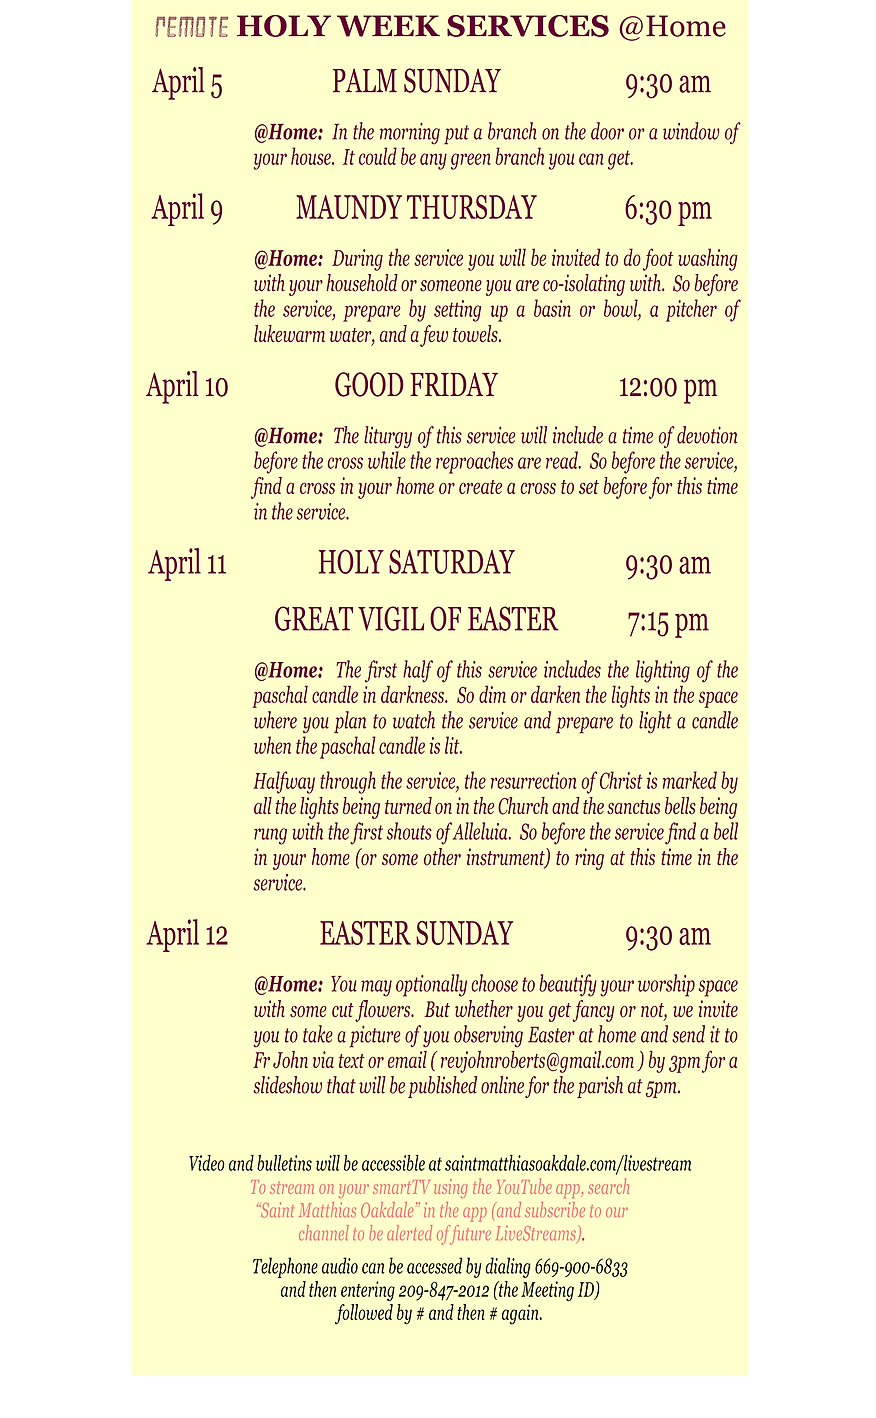 holy week at home schedule CORRECTED.png